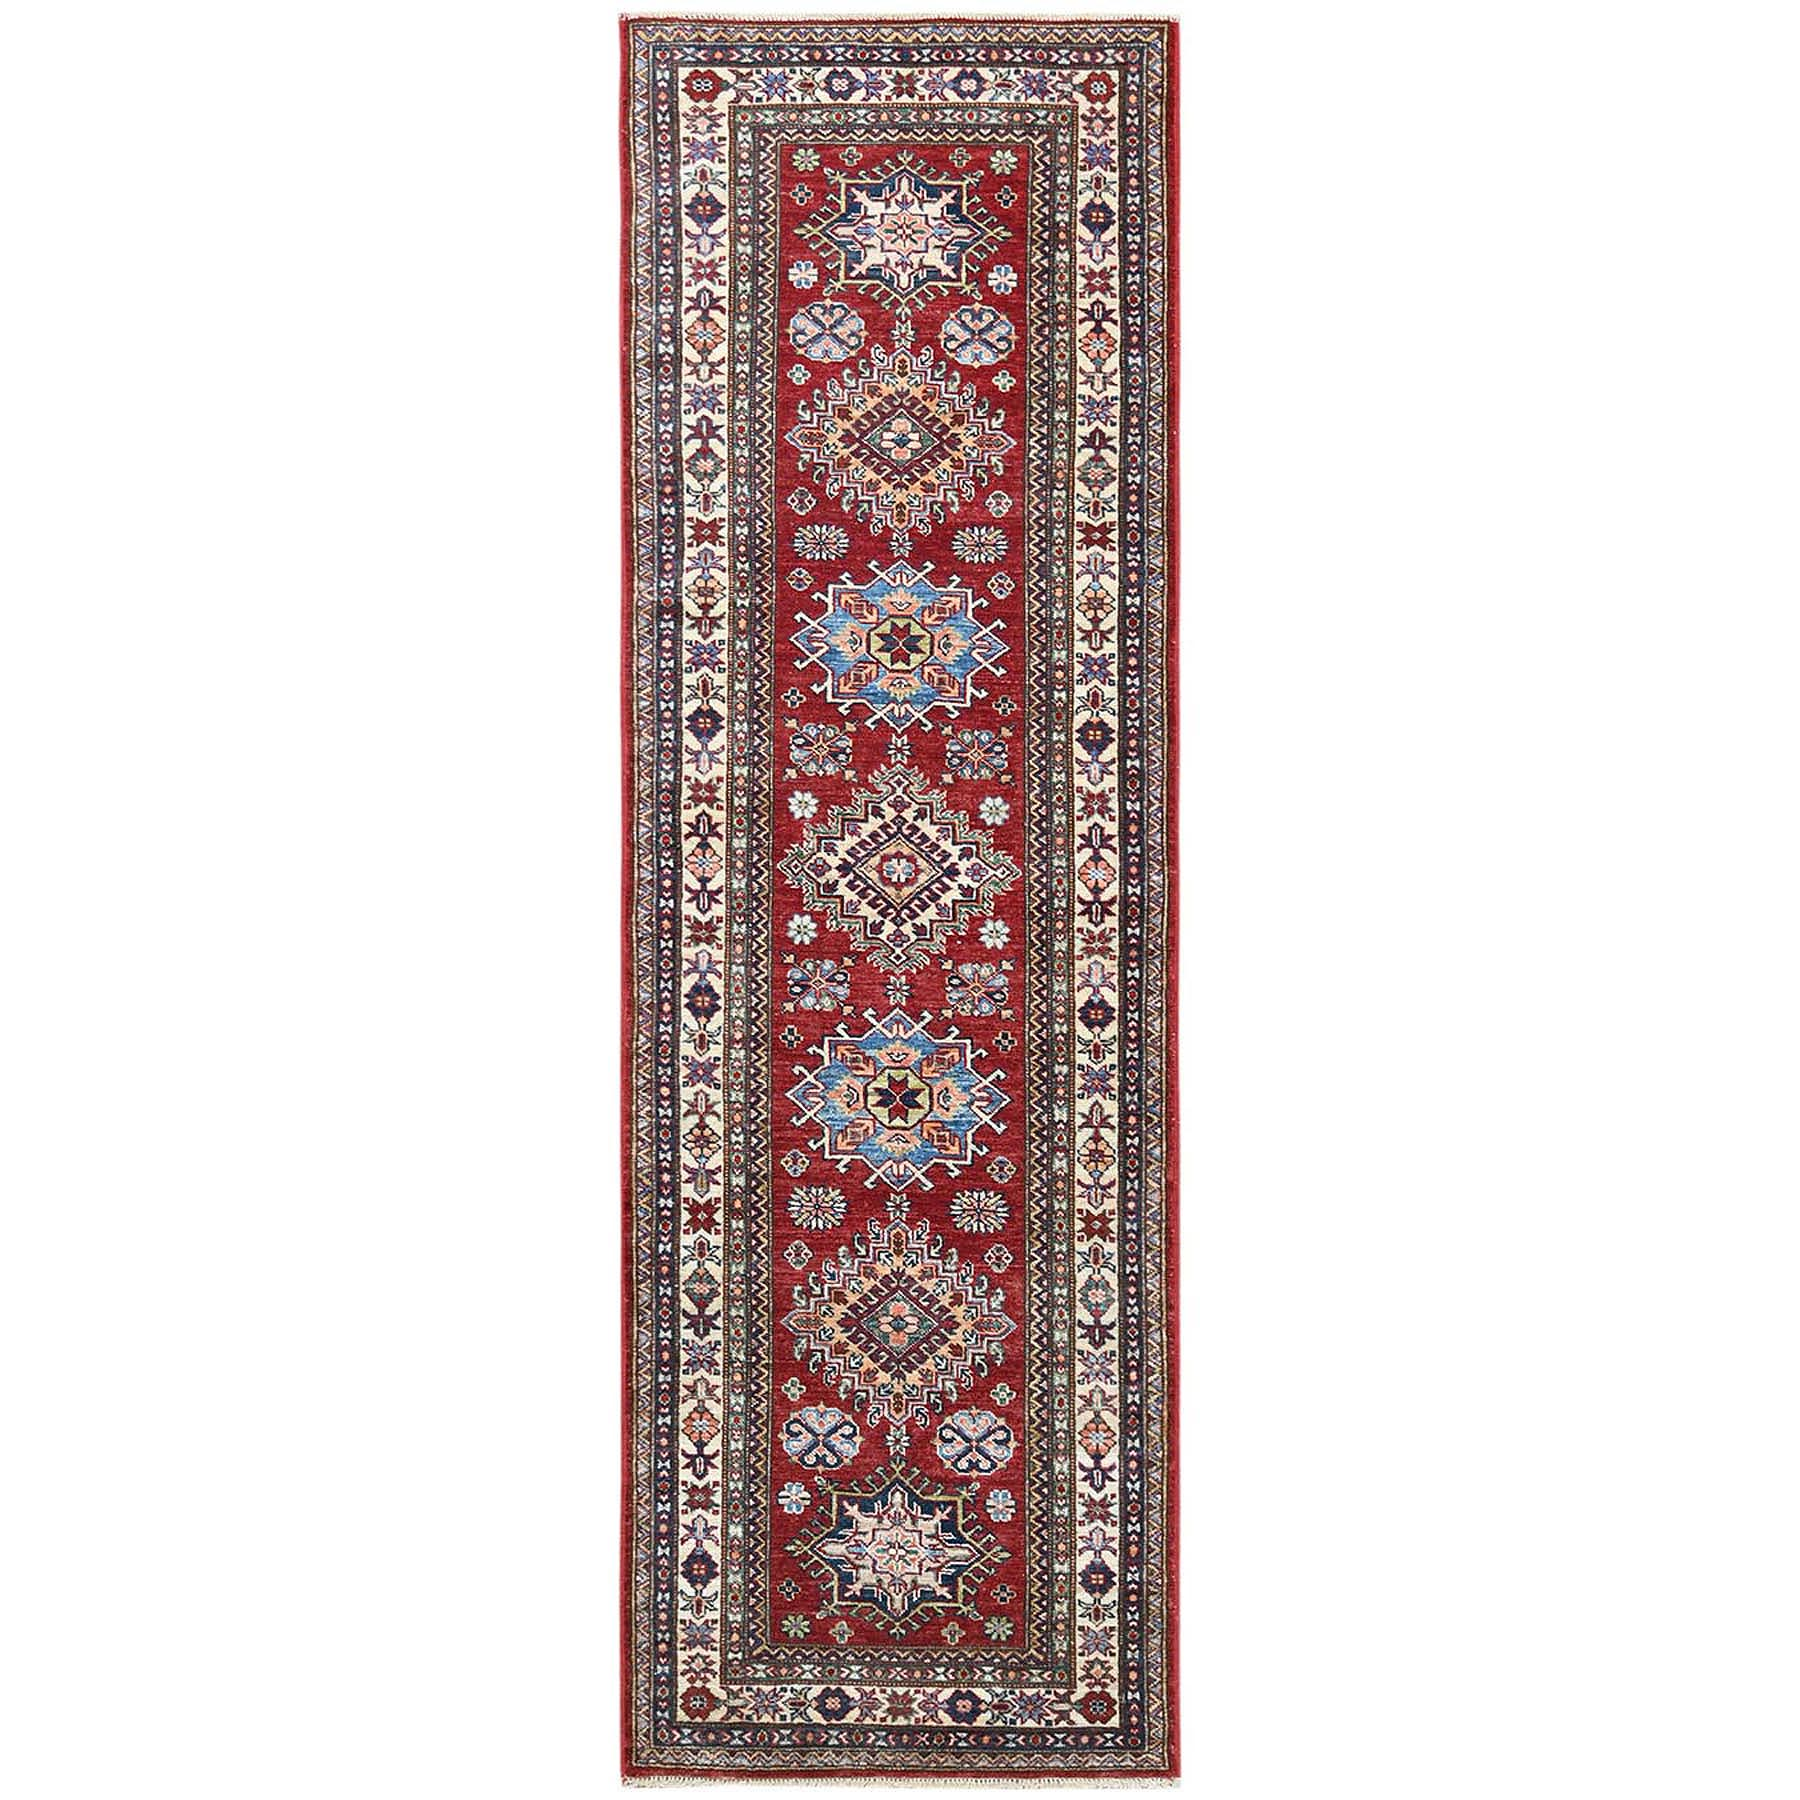 "2'7""x8'1"" Red Super Kazak With Geometric Design Glimmery Wool Hand Knotted Oriental Runner Rug"